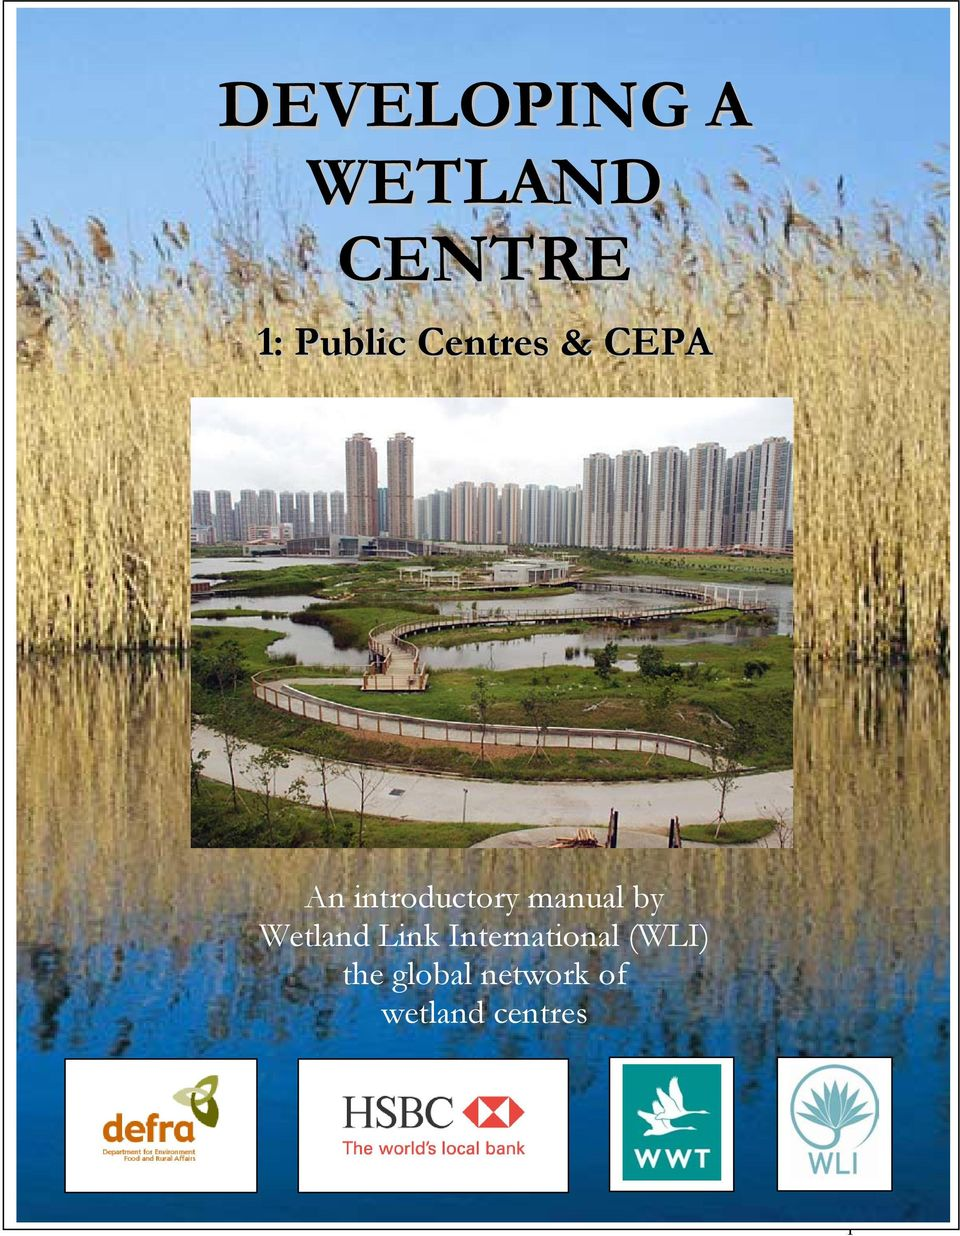 by Wetland Link International (WLI)